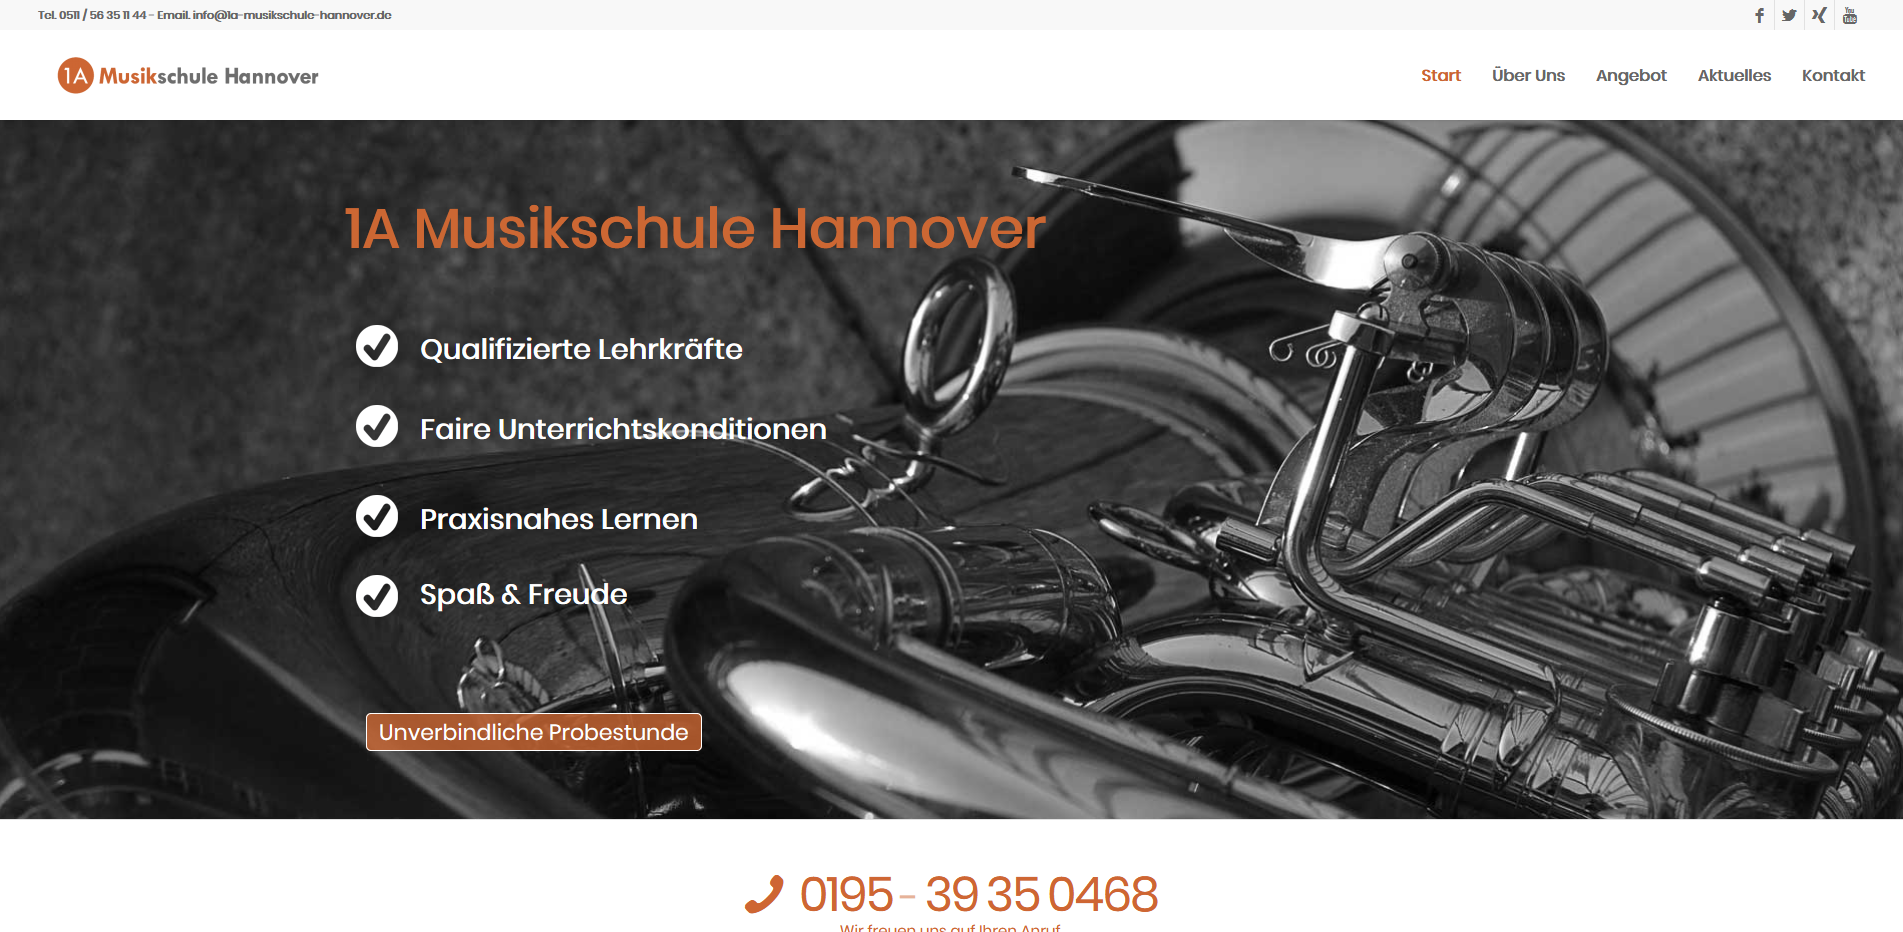 1A Musikschule Hannover